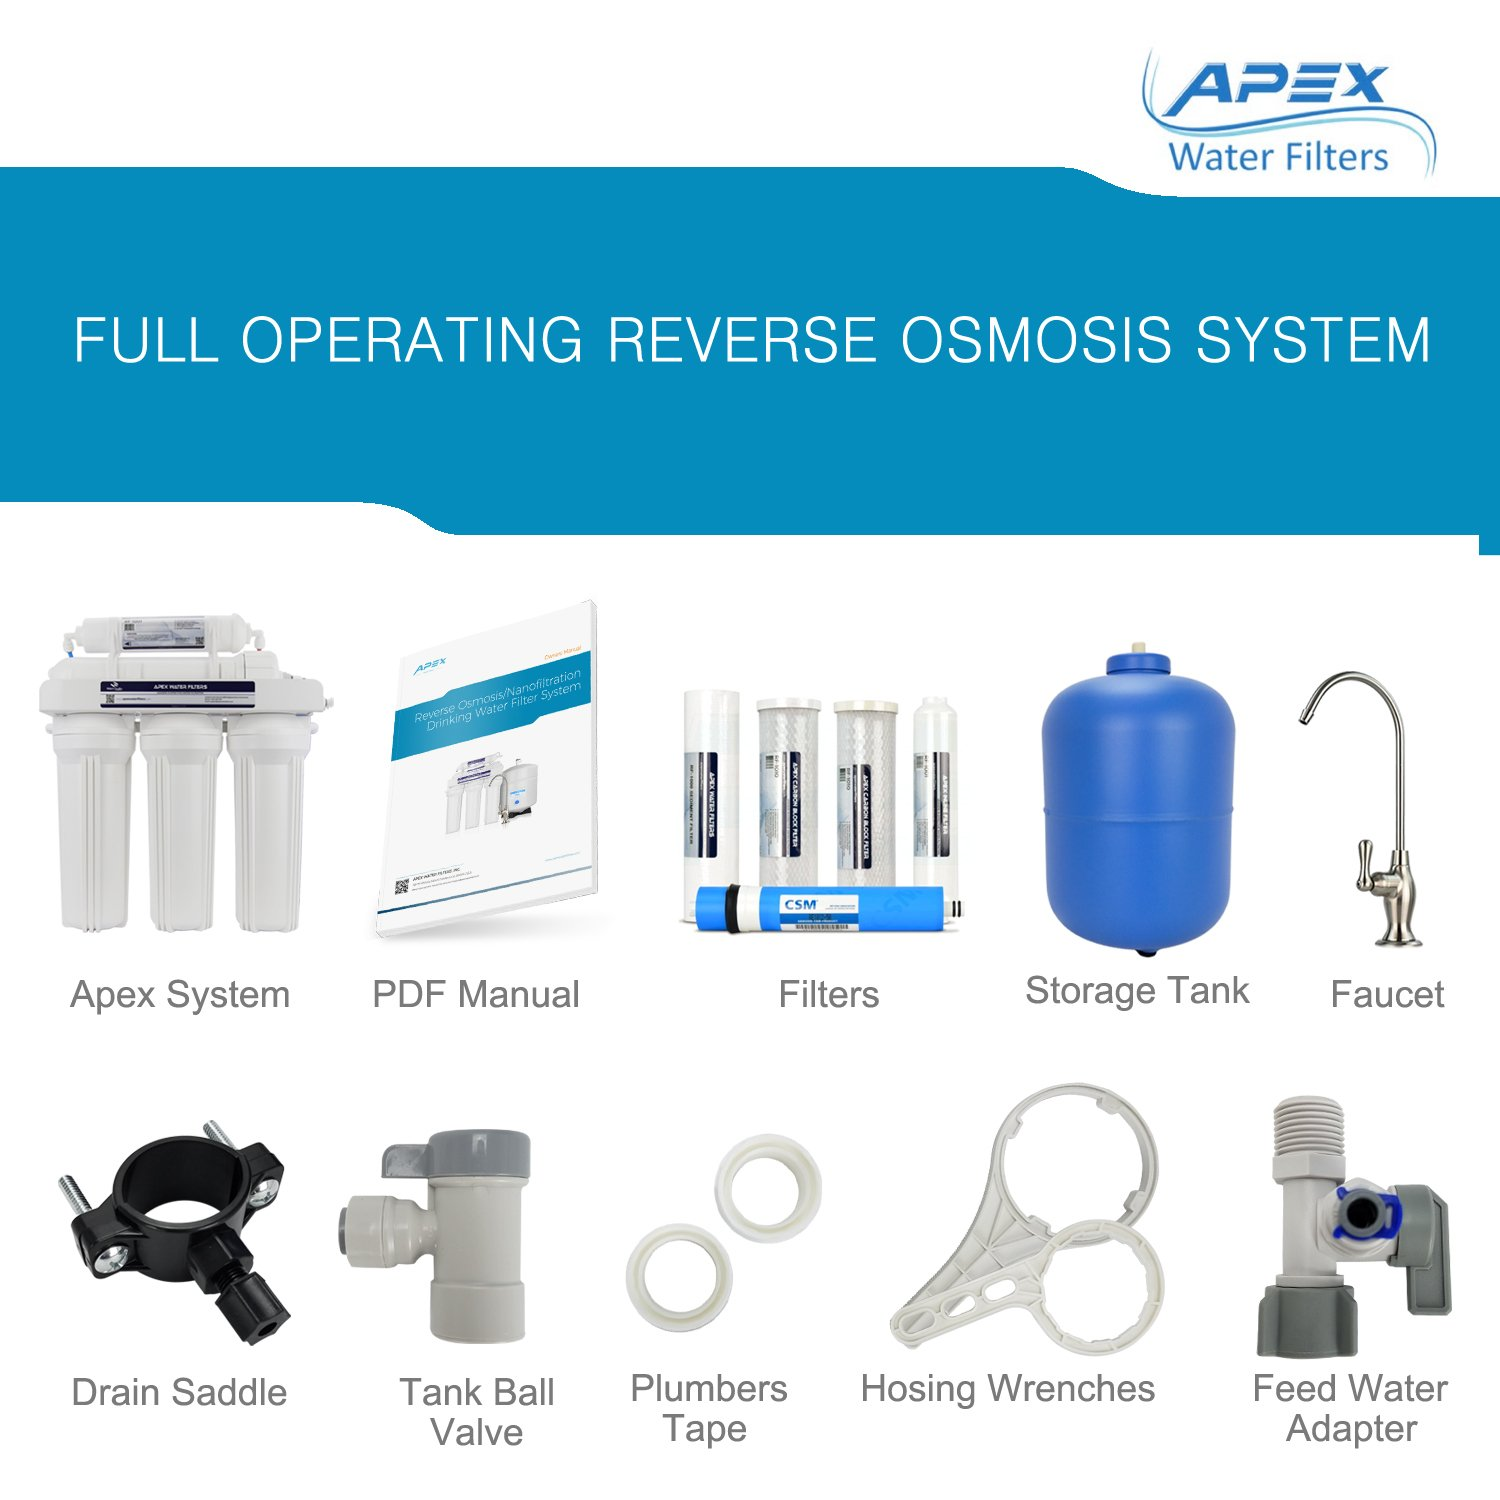 Amazon.com: APEX MR-5050 5 Stage Reverse Osmosis Drinking Water ...